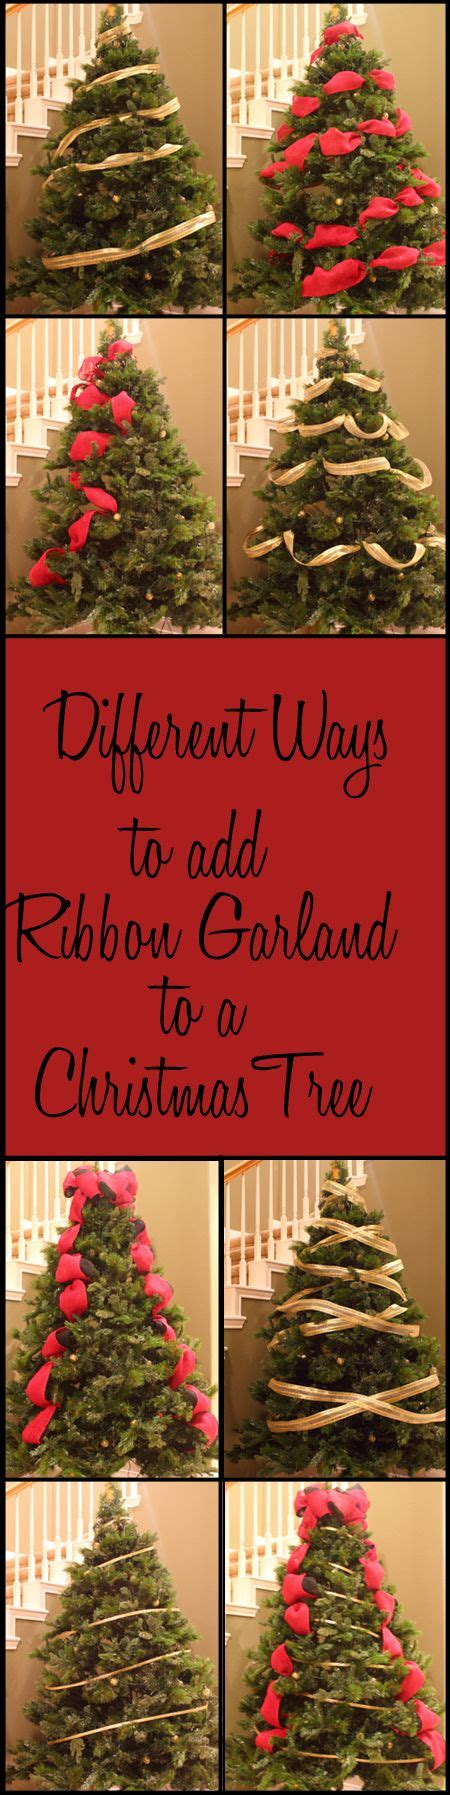 ways to decorate christmas tree different ways to add ribbon garland to a christmas tree 9009